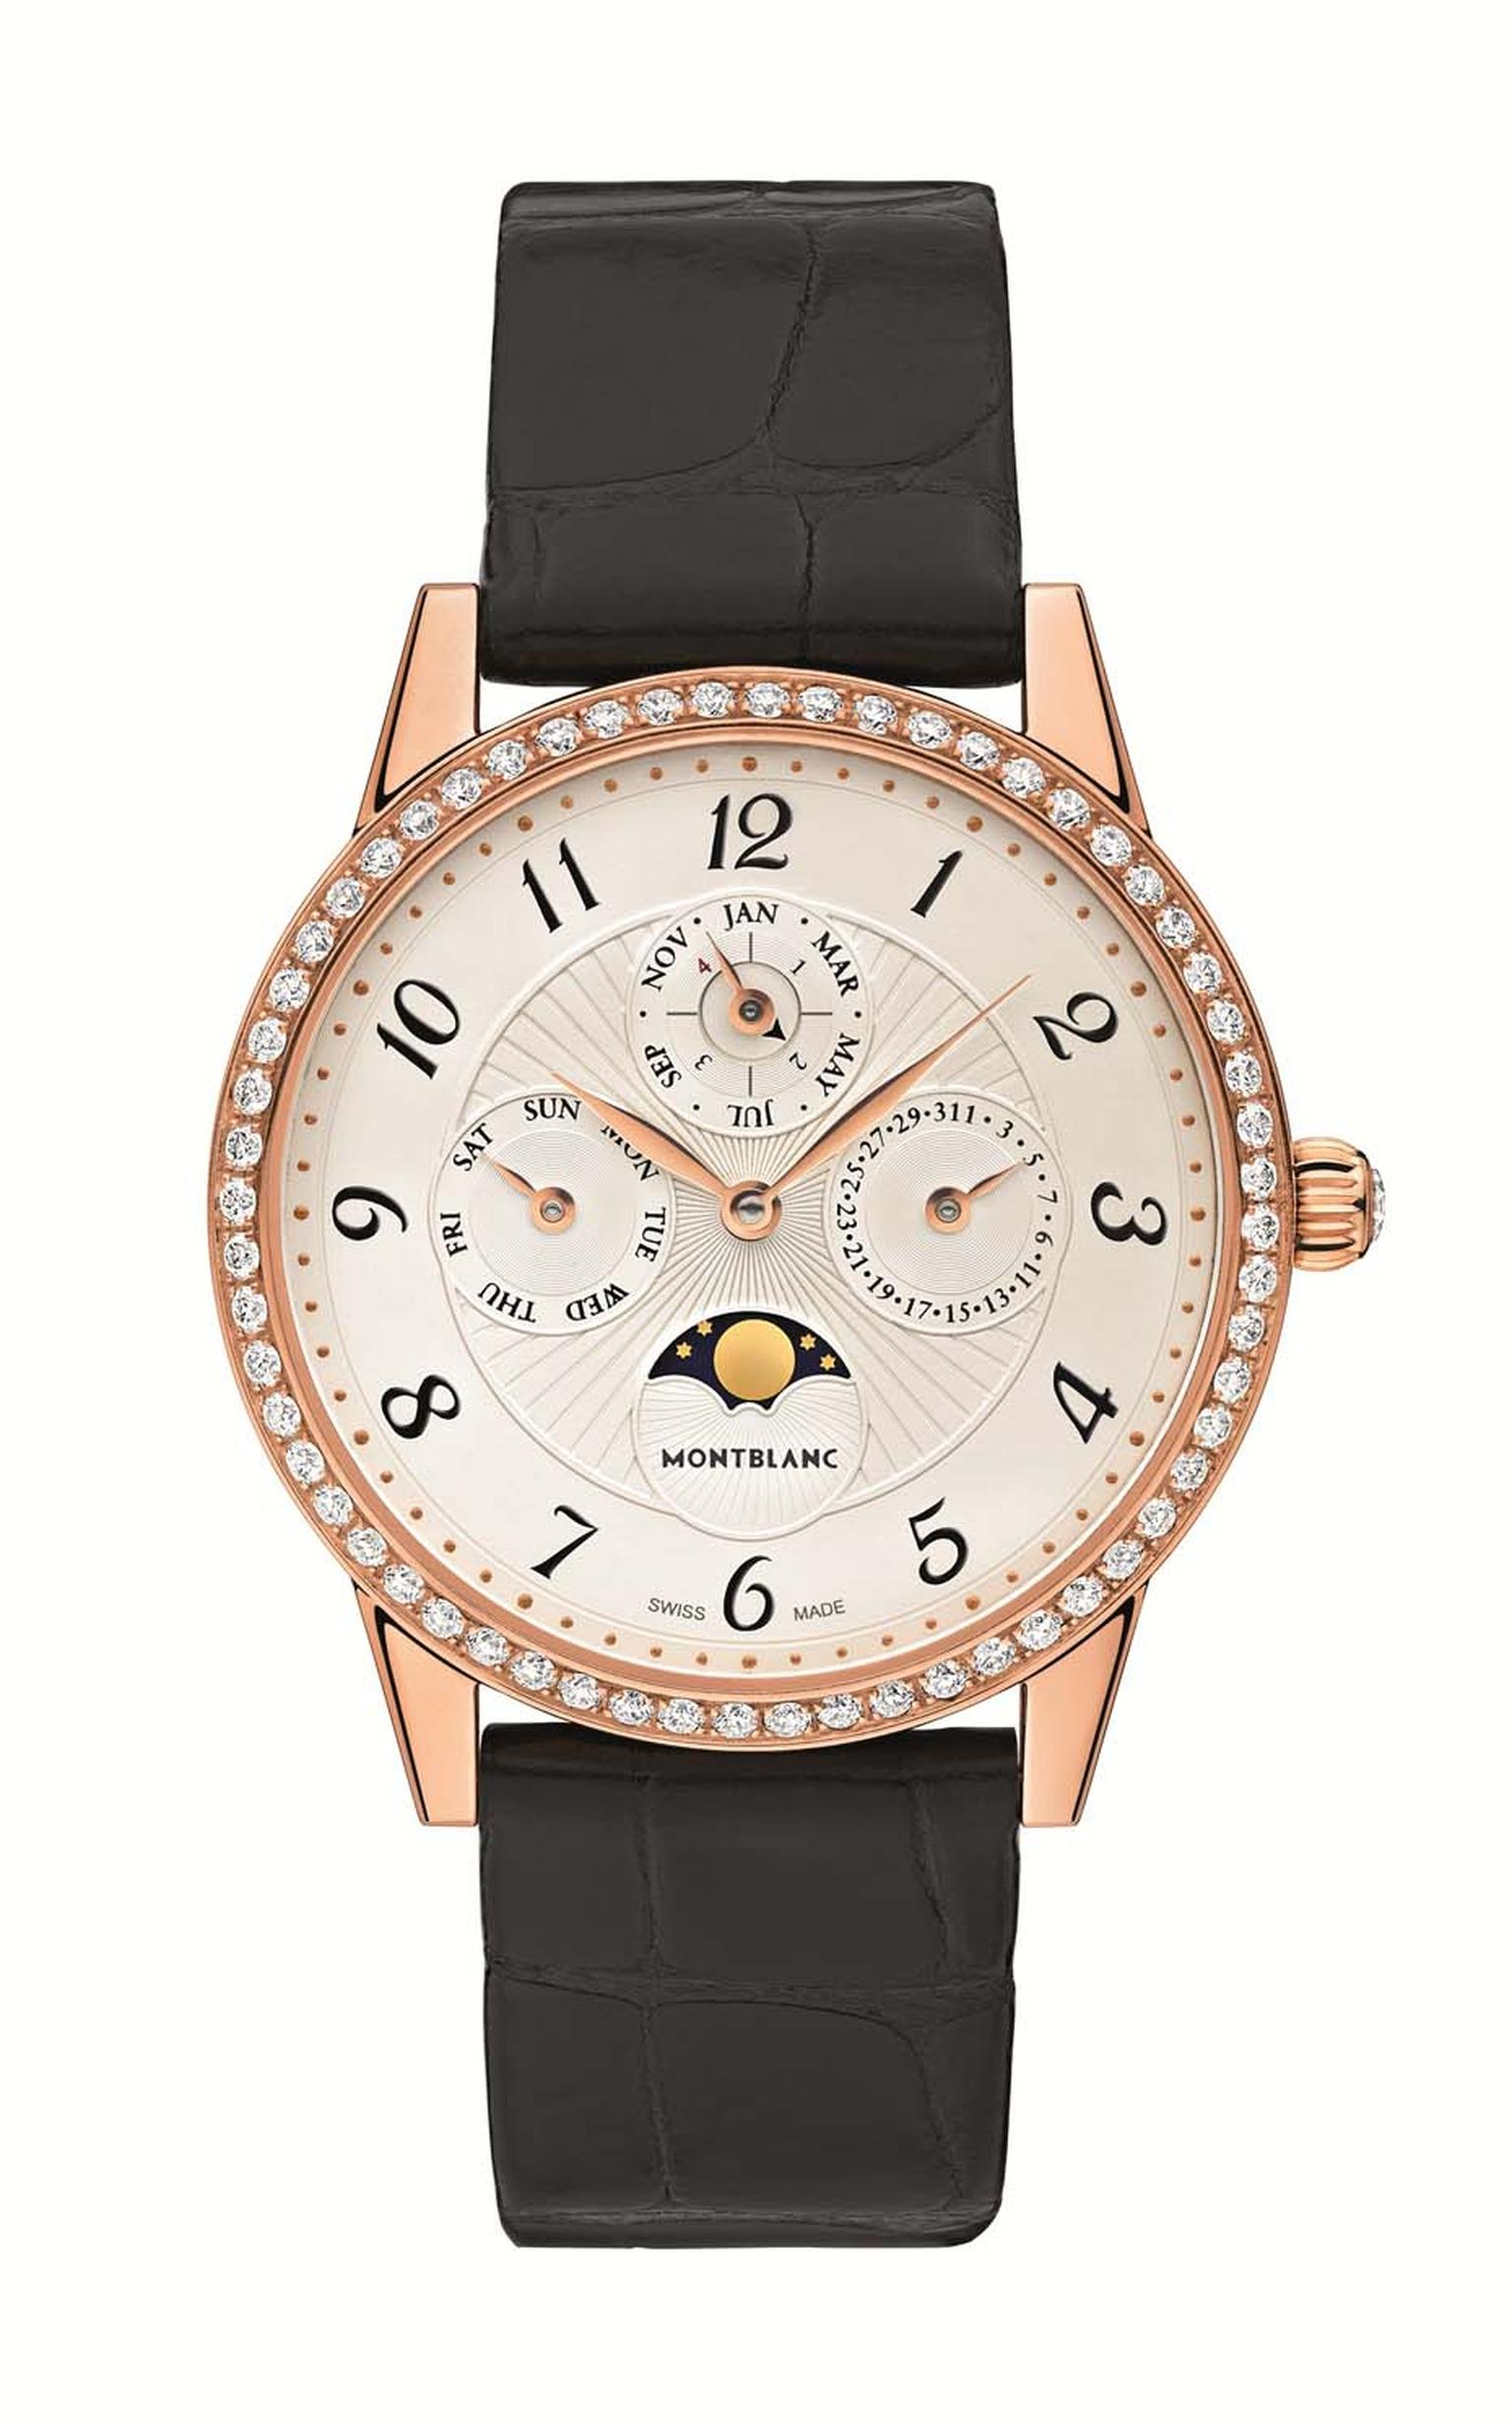 Montblanc Bohème perpetual calendar watch for women. Unlike many women's complications, which are often just smaller versions of the pre-existing men's watch, the Bohème collection was conceived for women, and it shows.